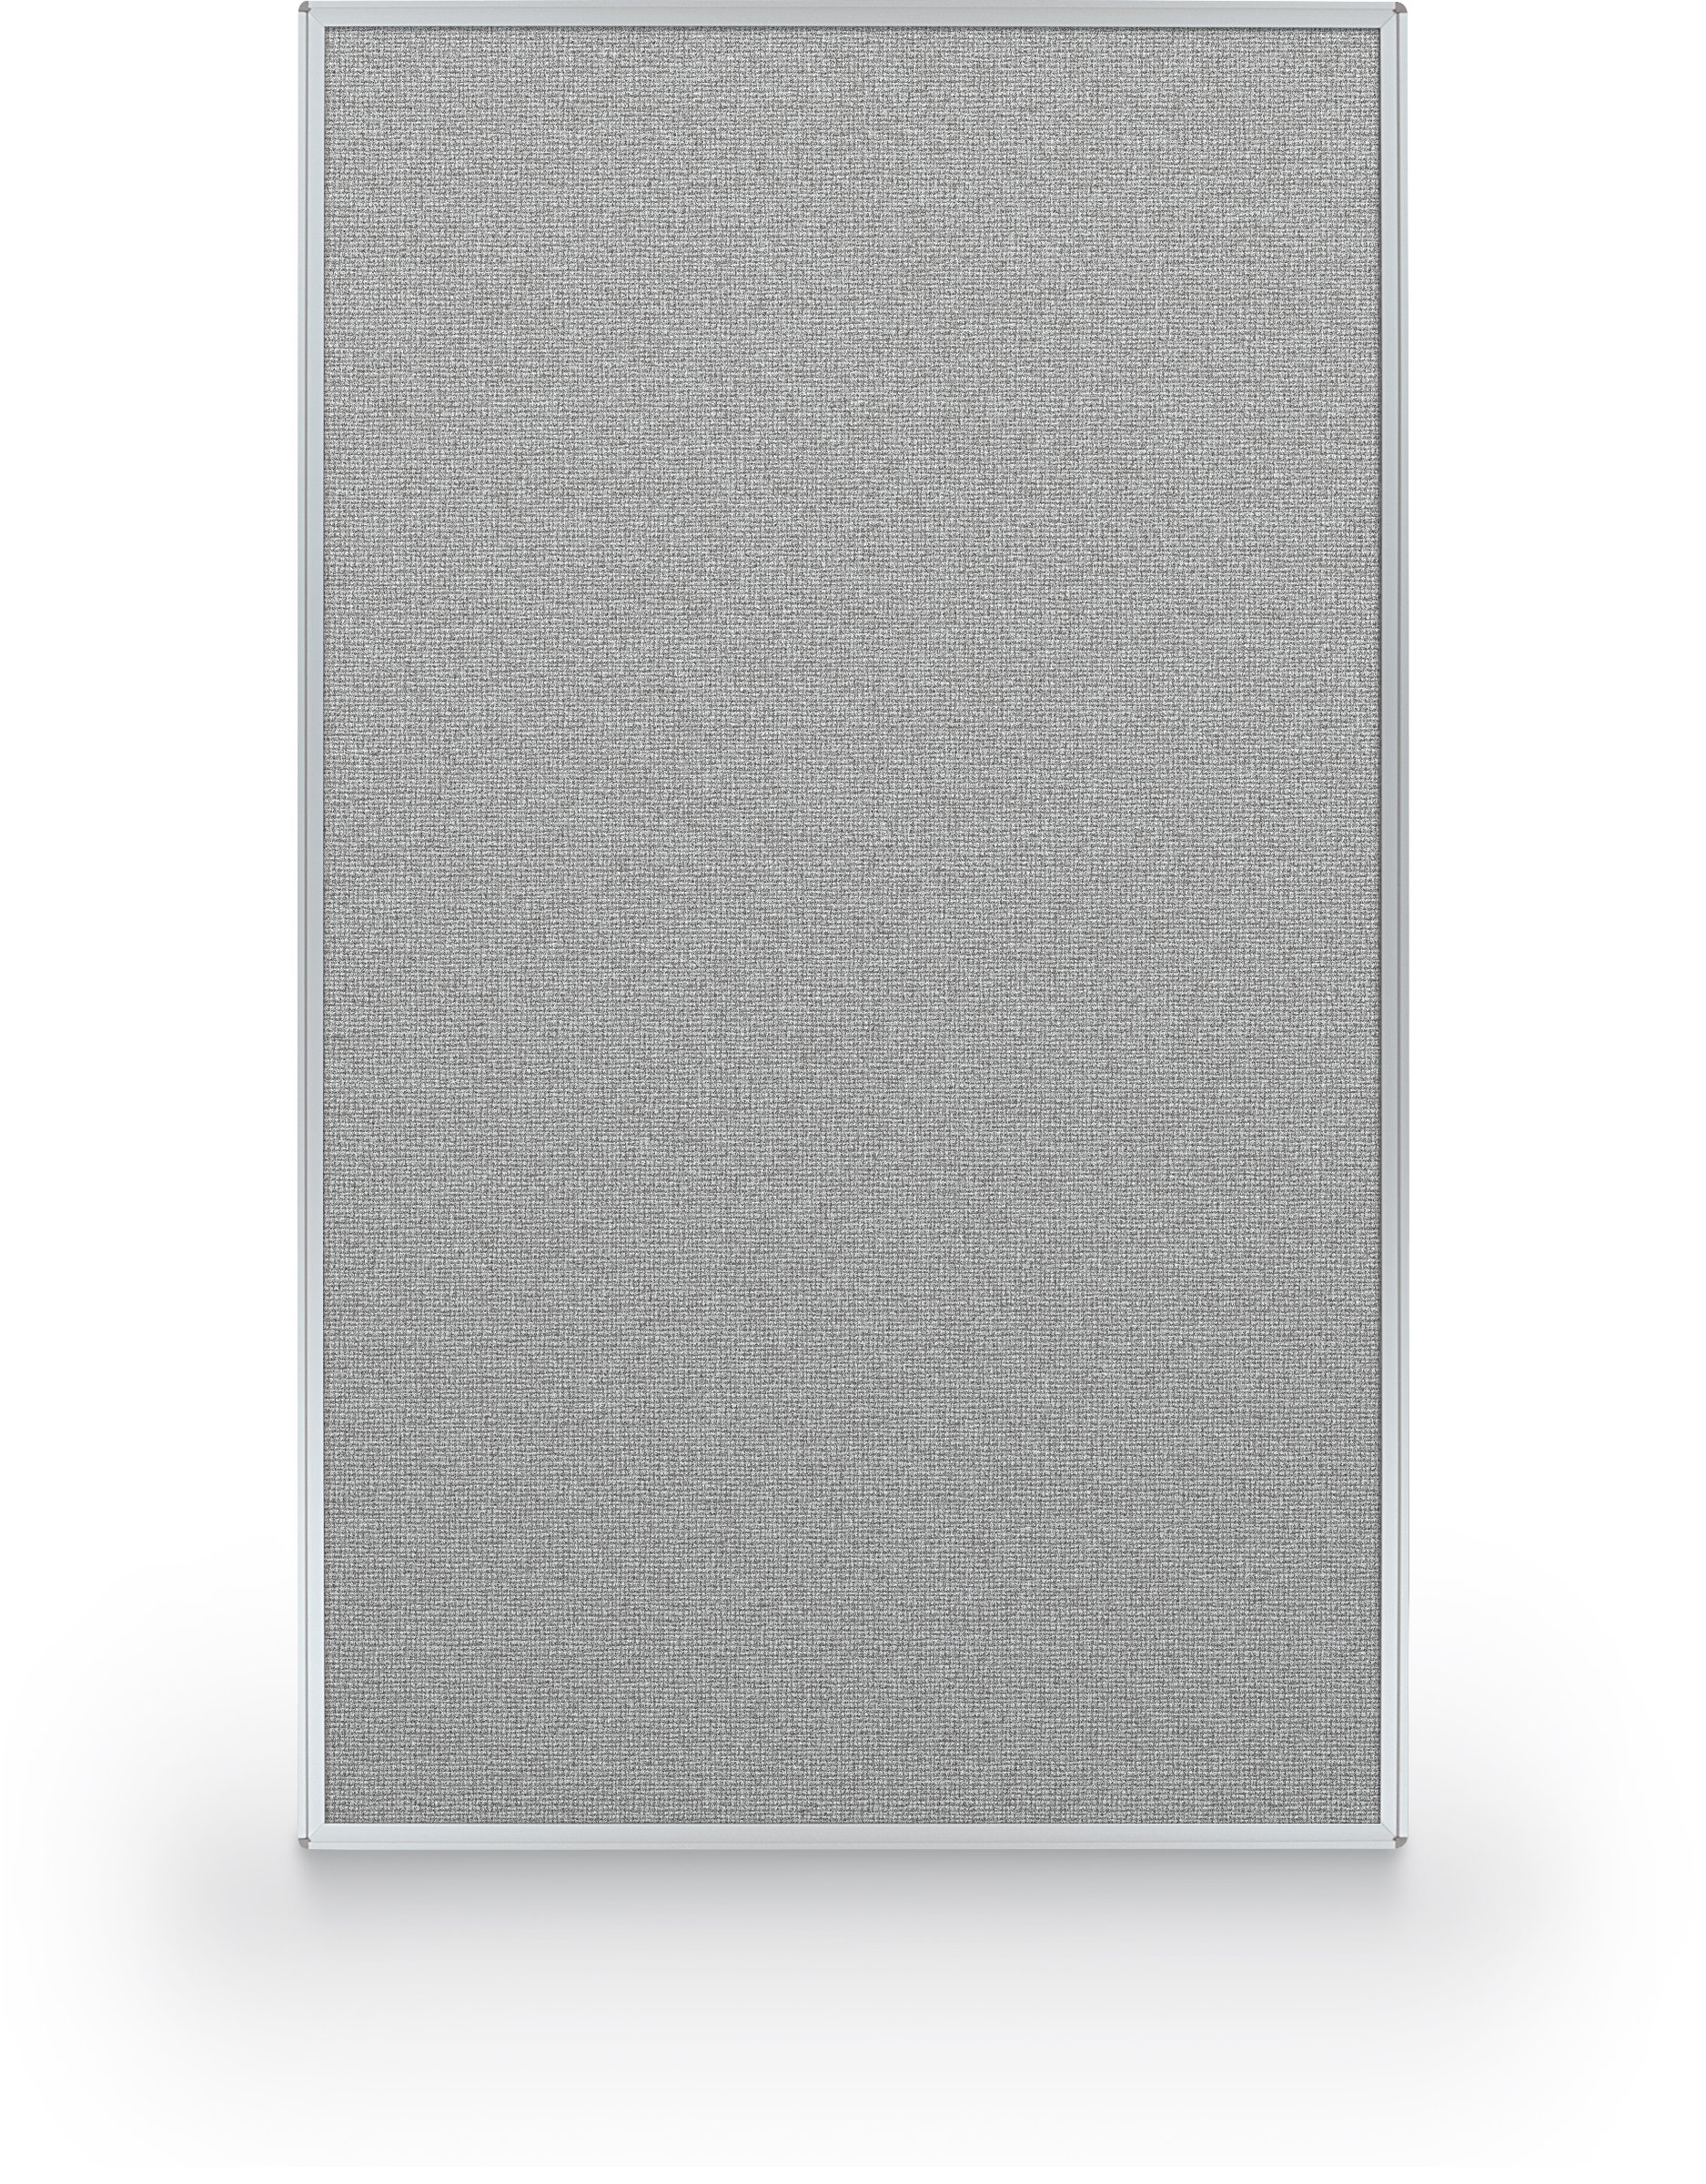 Best-Rite 60 x 36 Inch Standard Modular Divider Panel, Gray Fabric Panel, (66215-88)